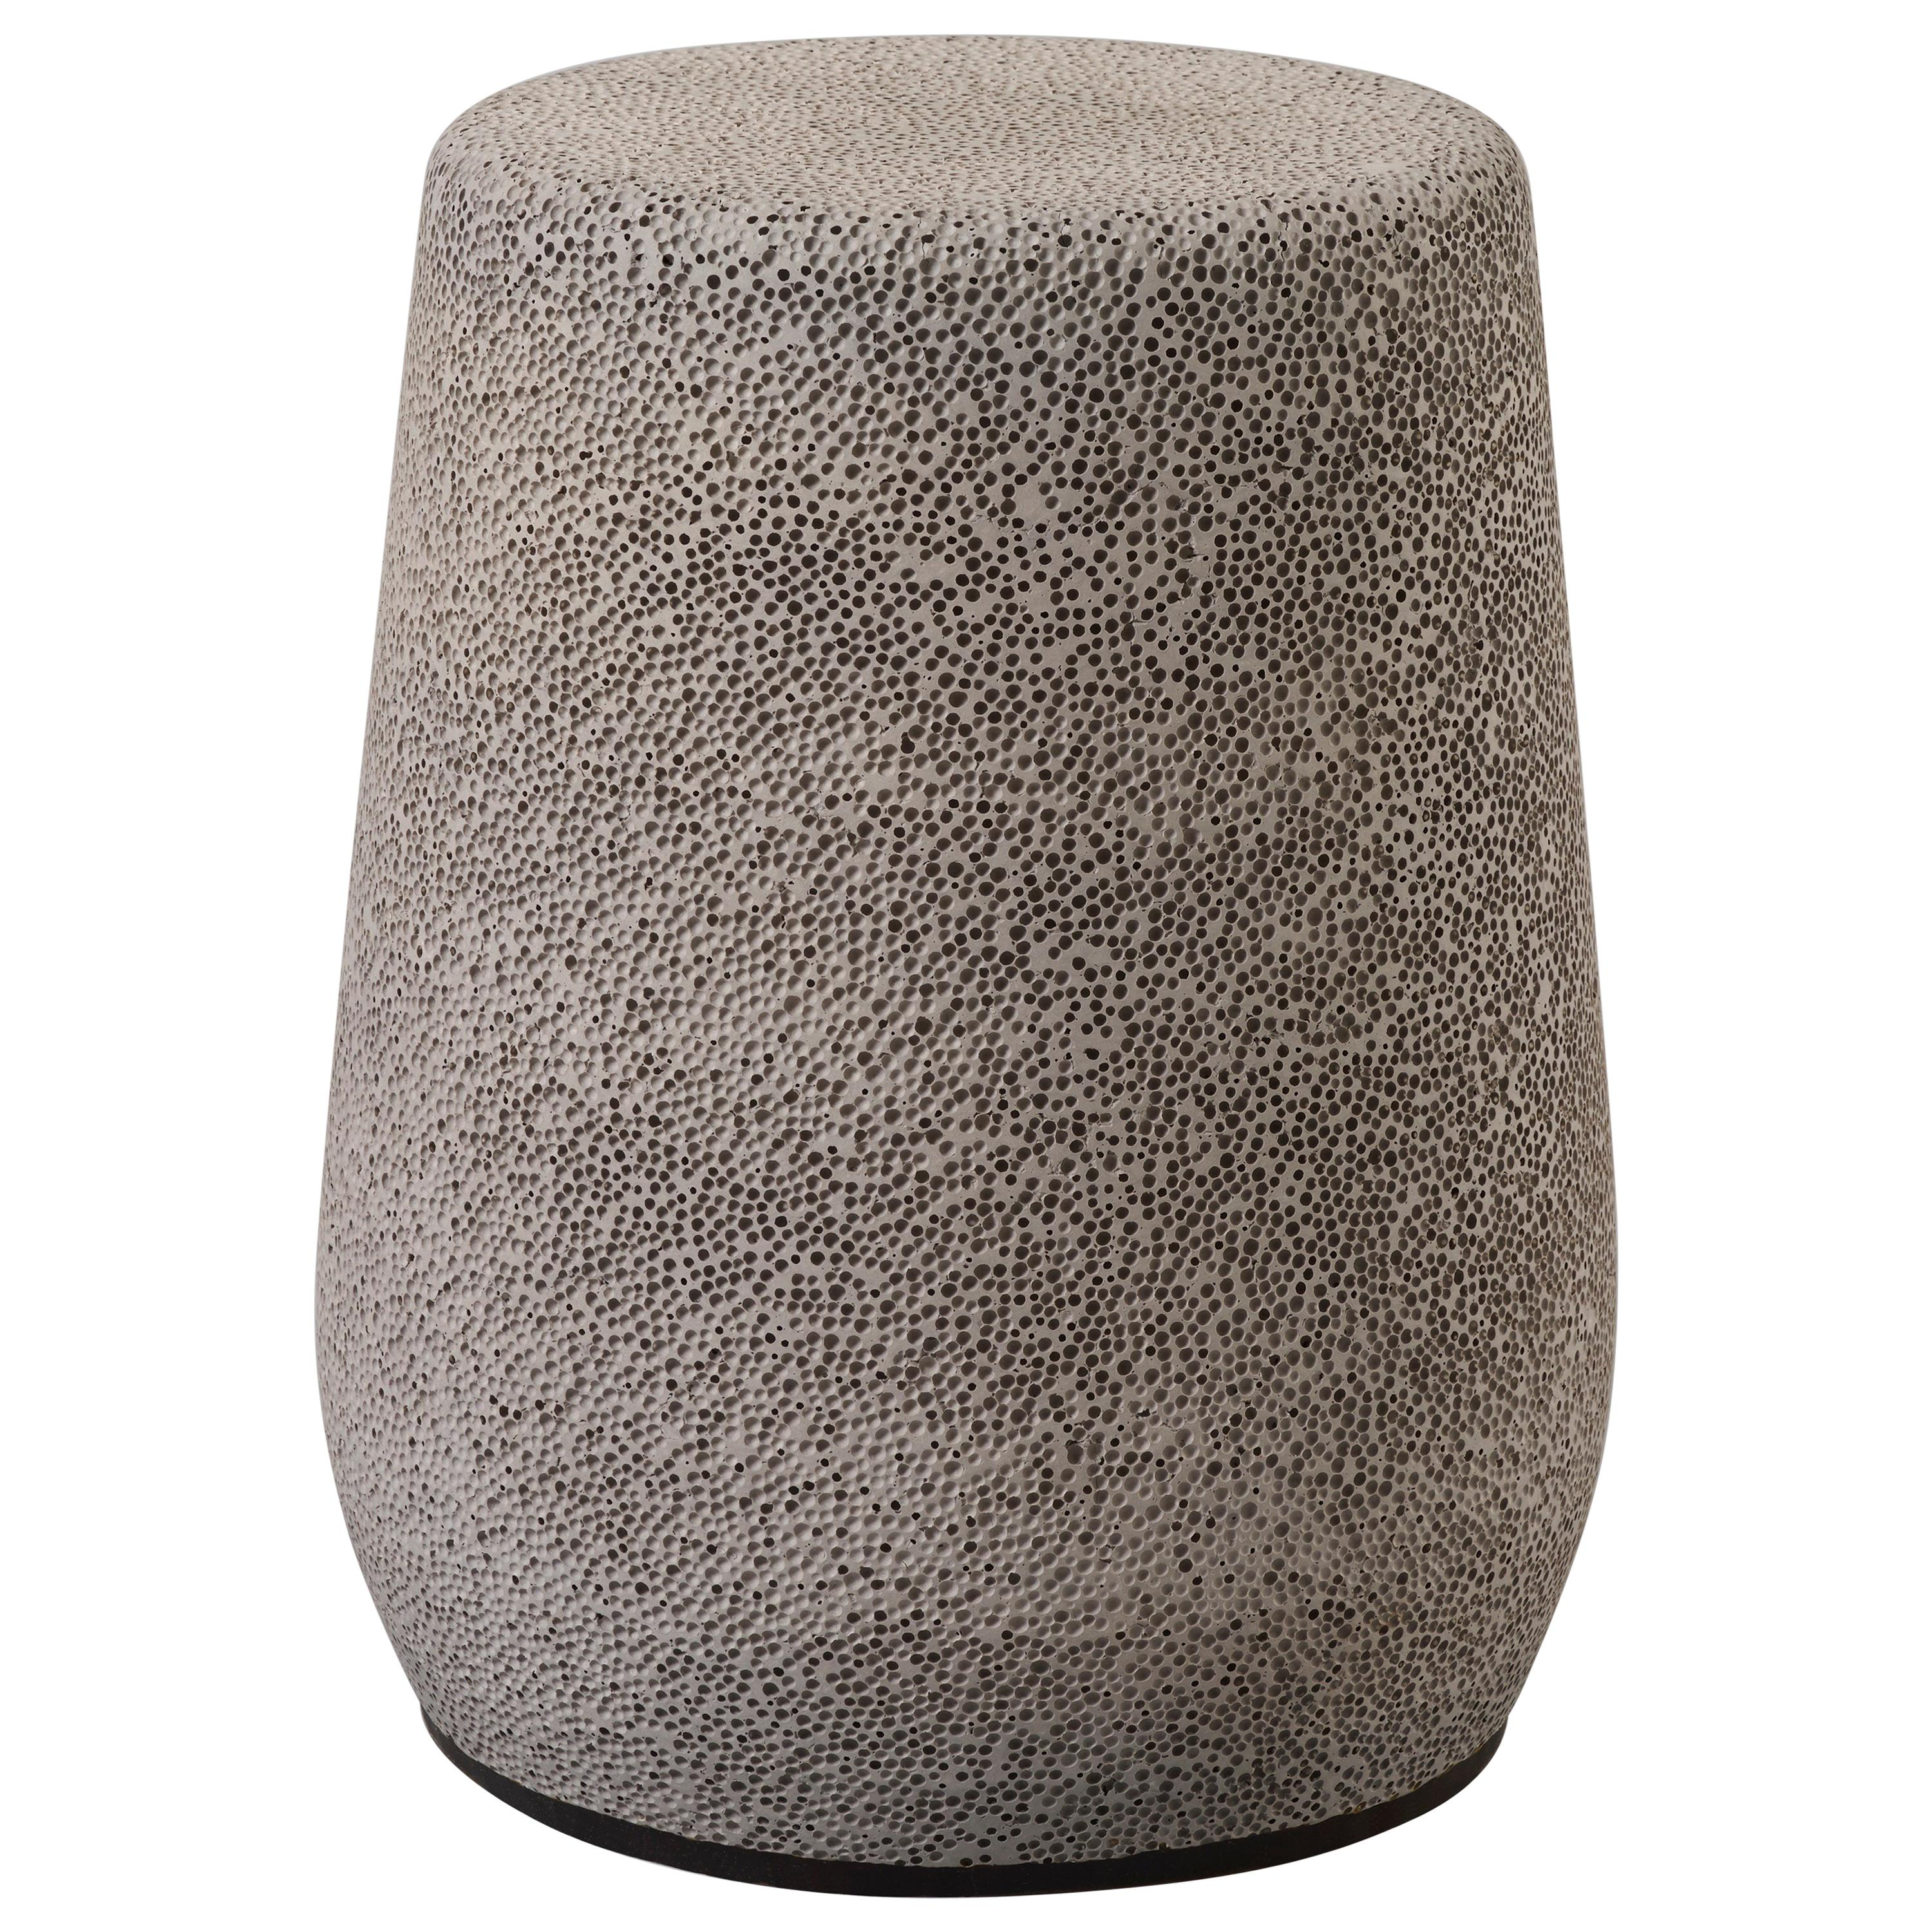 'Lightweight Porcelain' Stool and Side Table by Djim Berger - Medium Grey